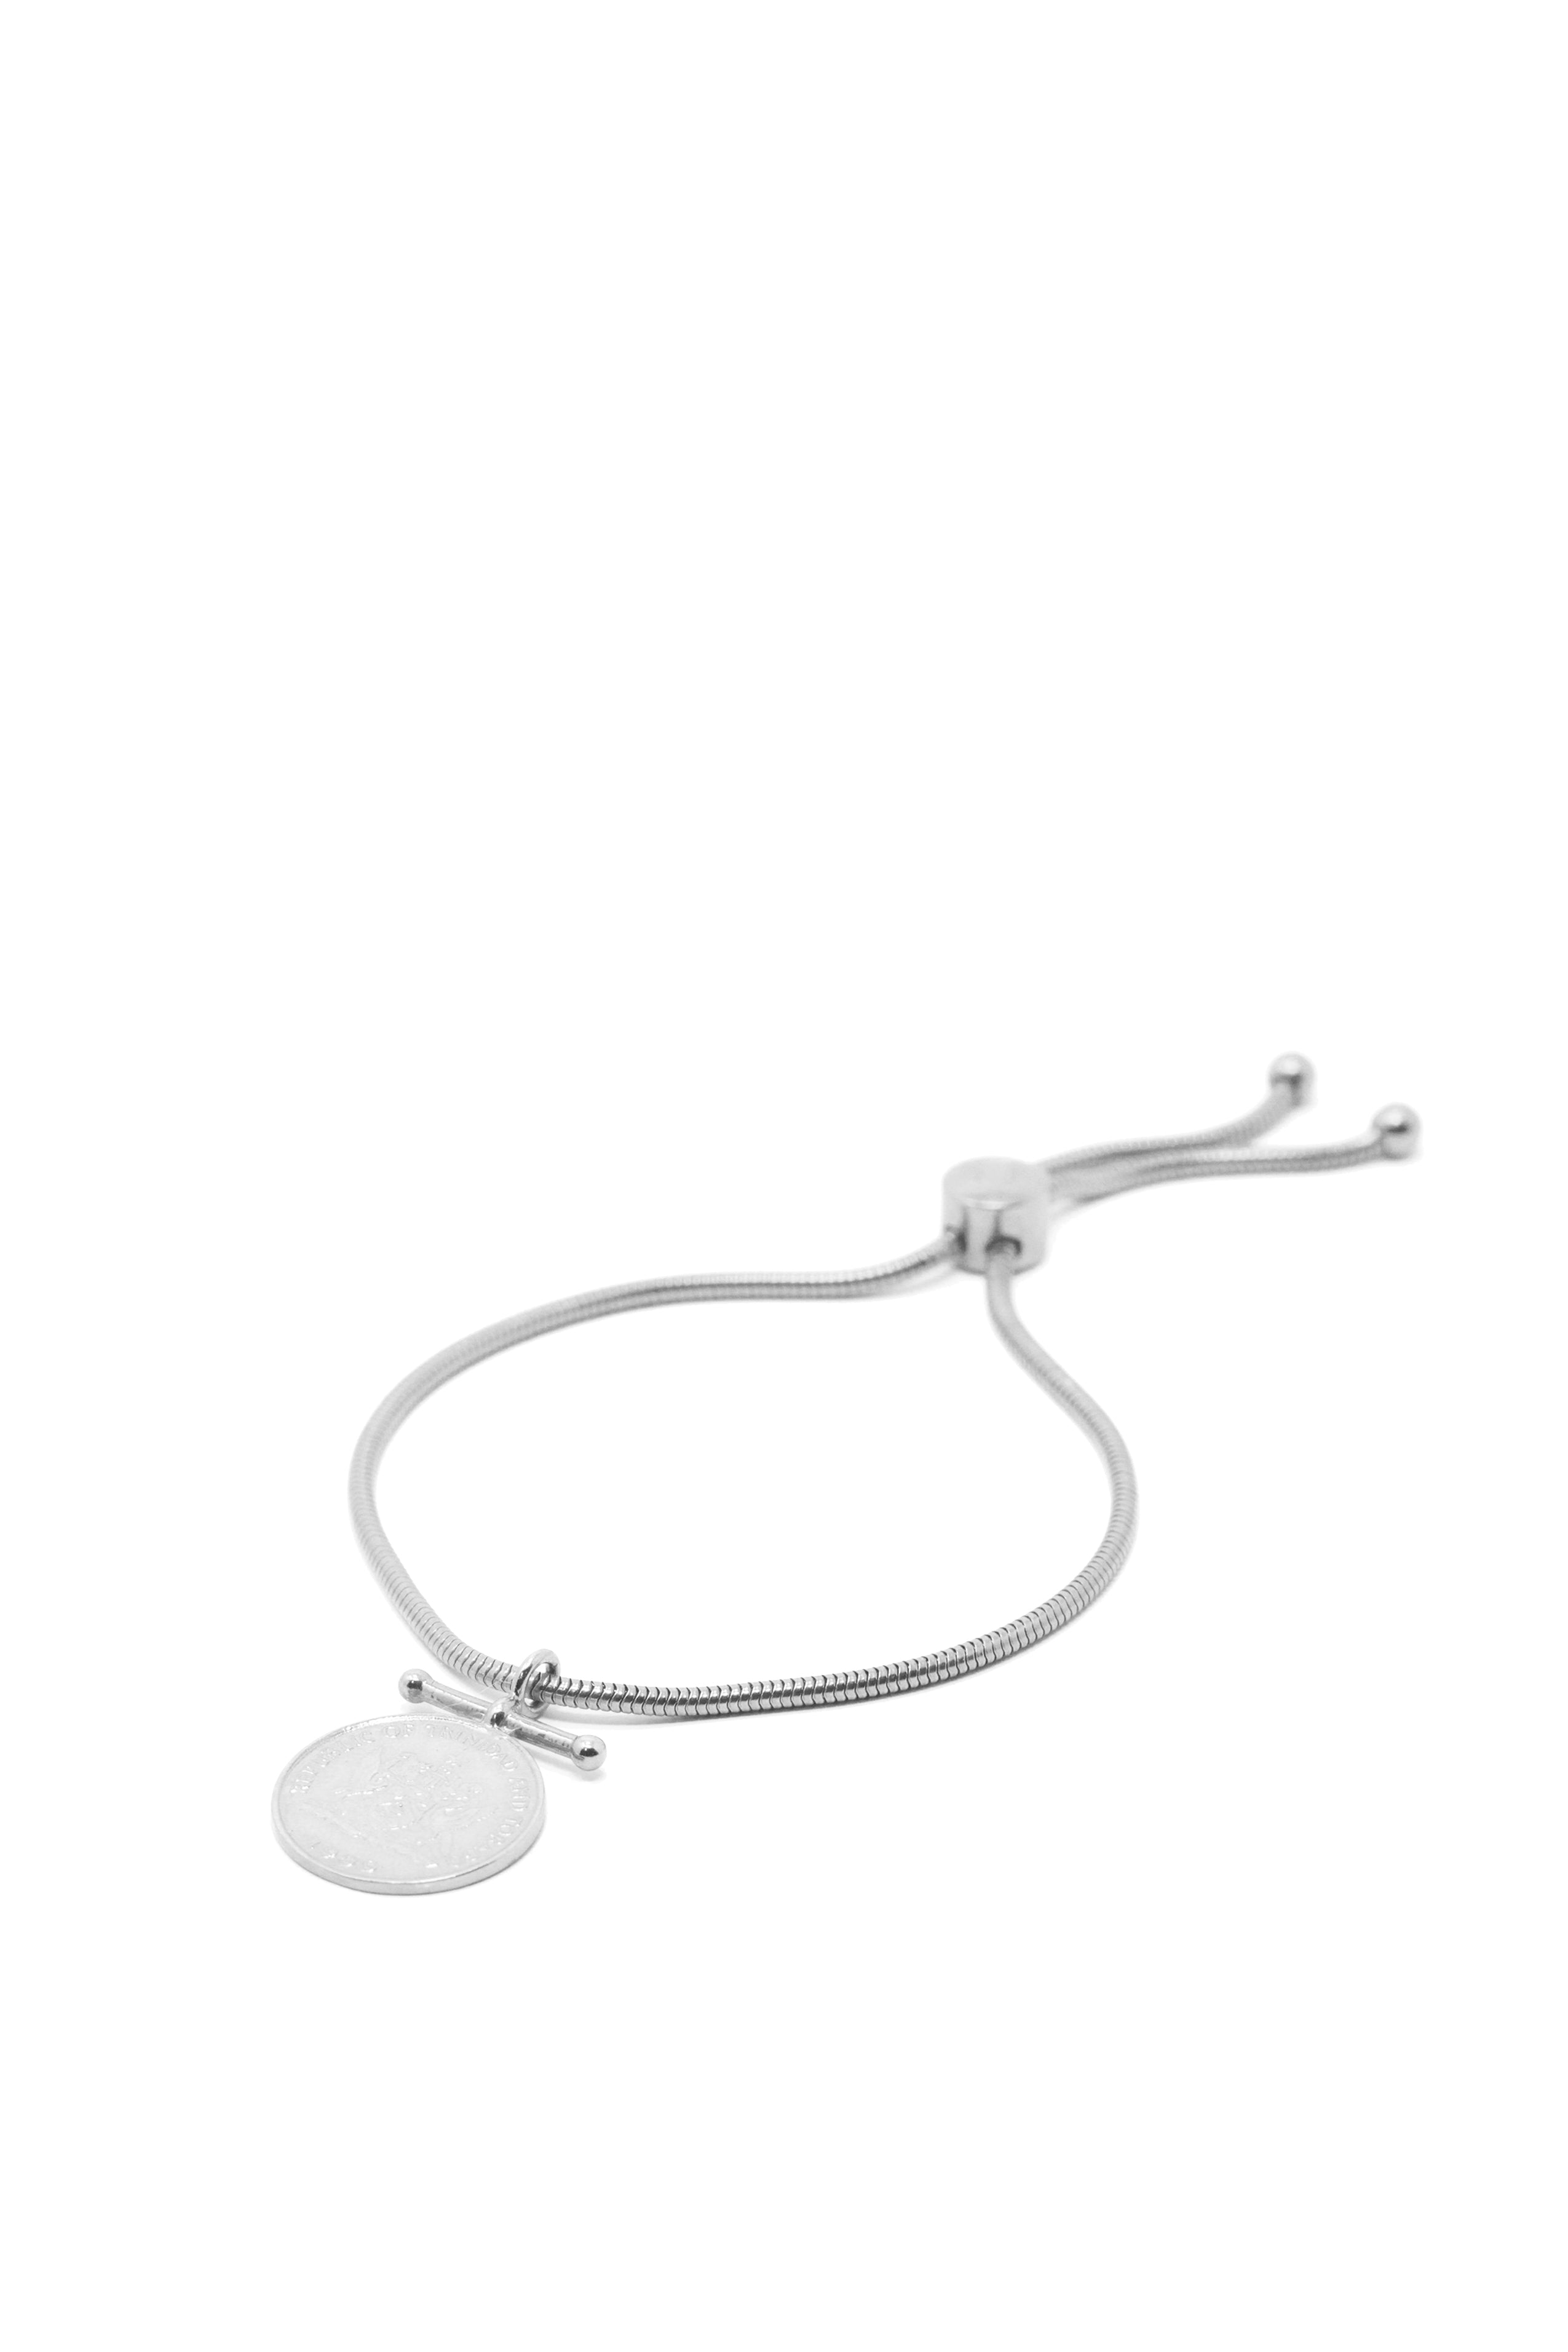 THE DRIP Charm Bracelet with Coin